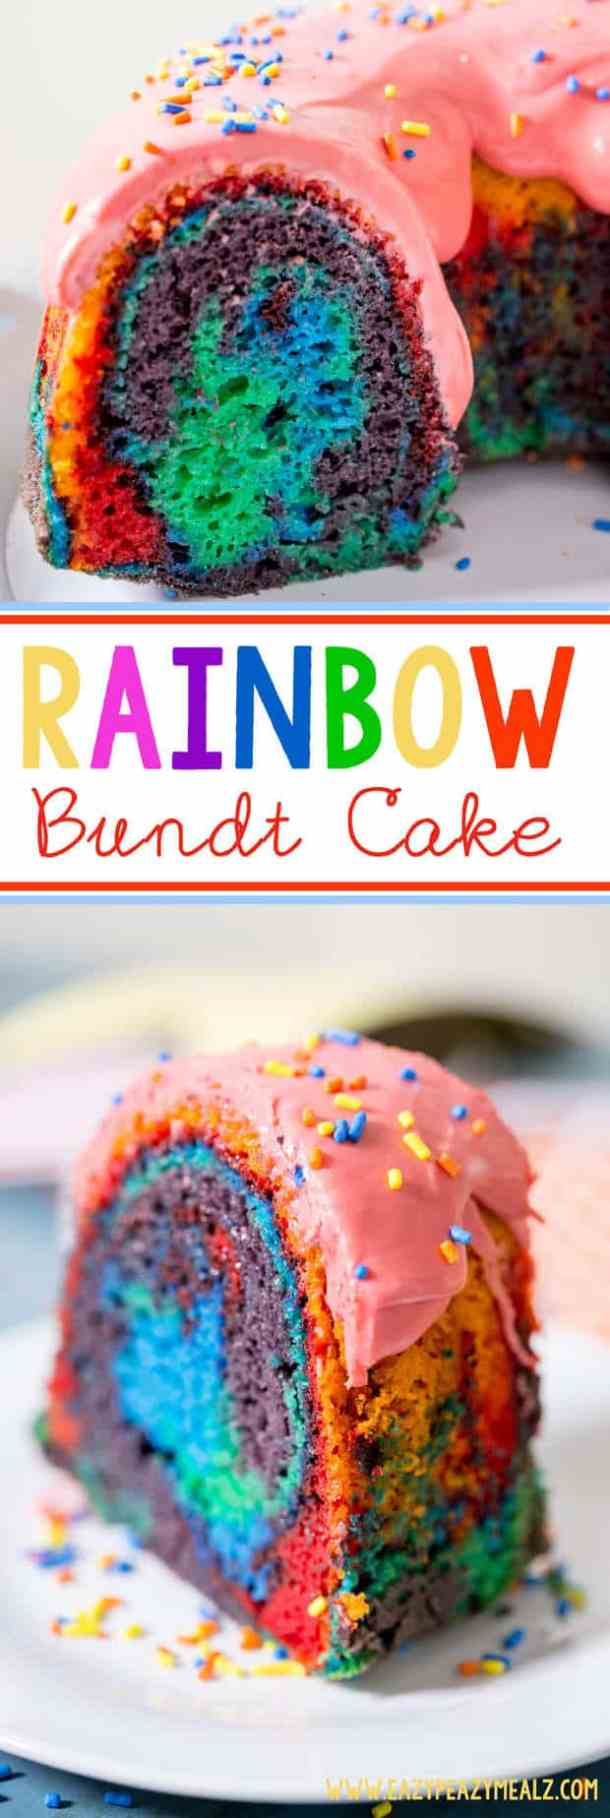 Rainbow Bundt Cake -- A classic vanilla bundt cake amped up into rainbow colored fun with a raspberry glaze and sprinkles! Perfect for St. Patrick's Day or a party